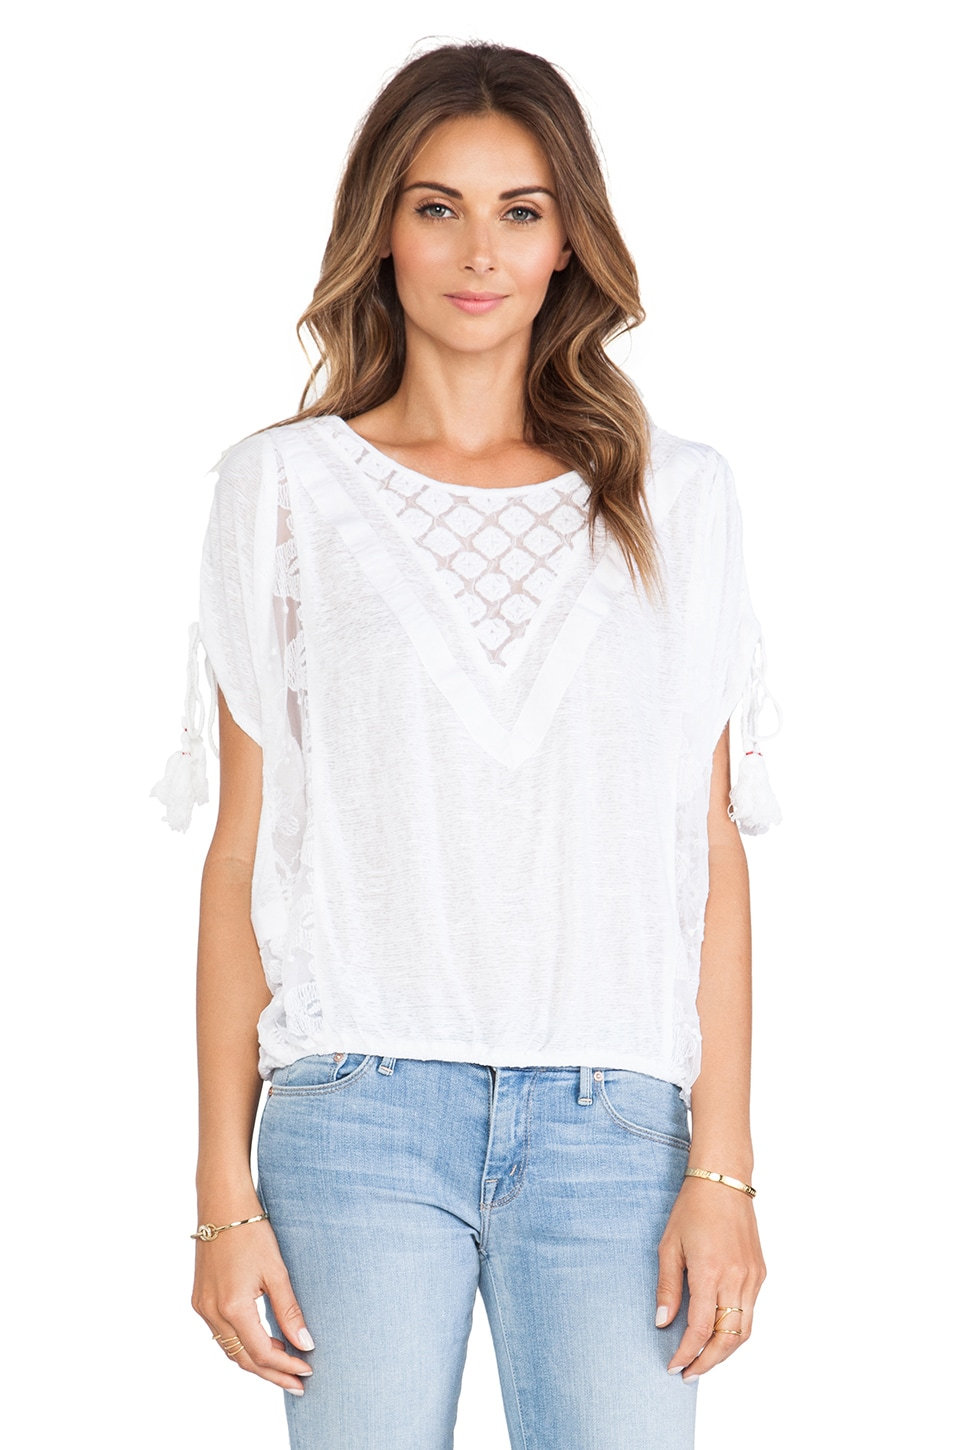 Free People South of the Equator Top in White